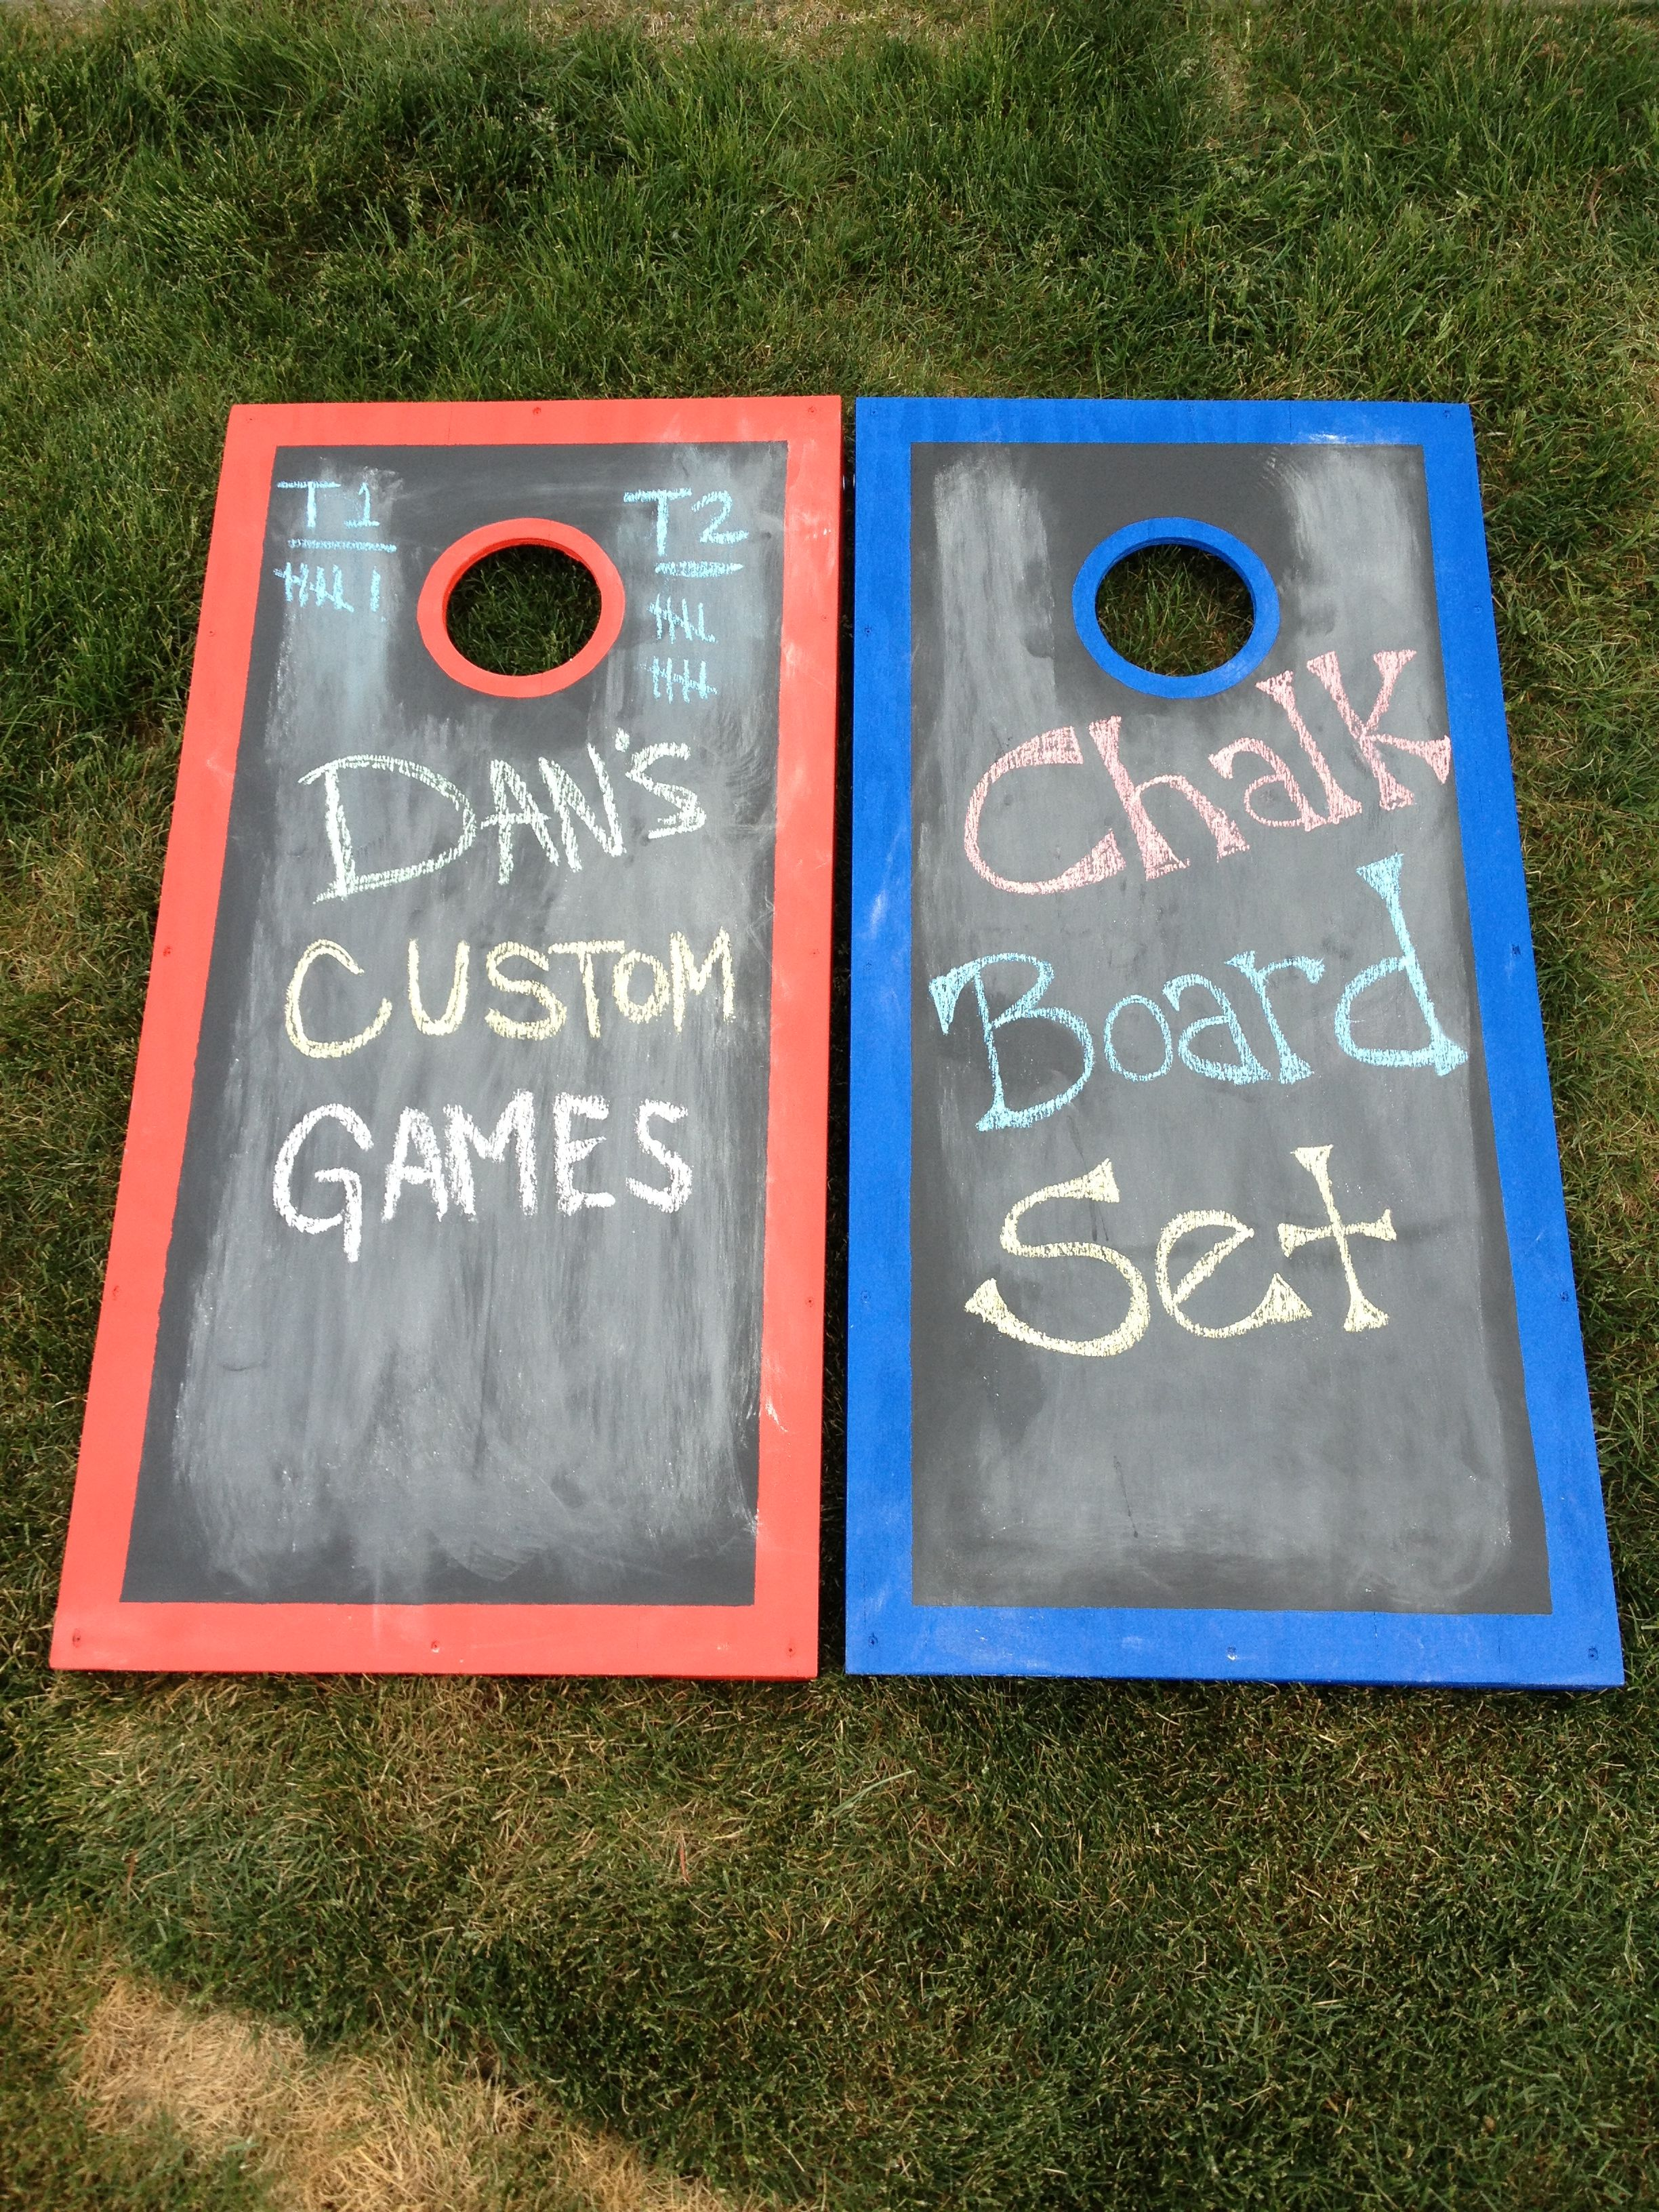 Cornhole Design Ideas 1000 ideas about cornhole designs on pinterest cornhole cornhole boards and corn hole Draw Your Own Designs Each Round With This Chalk Board Set Www